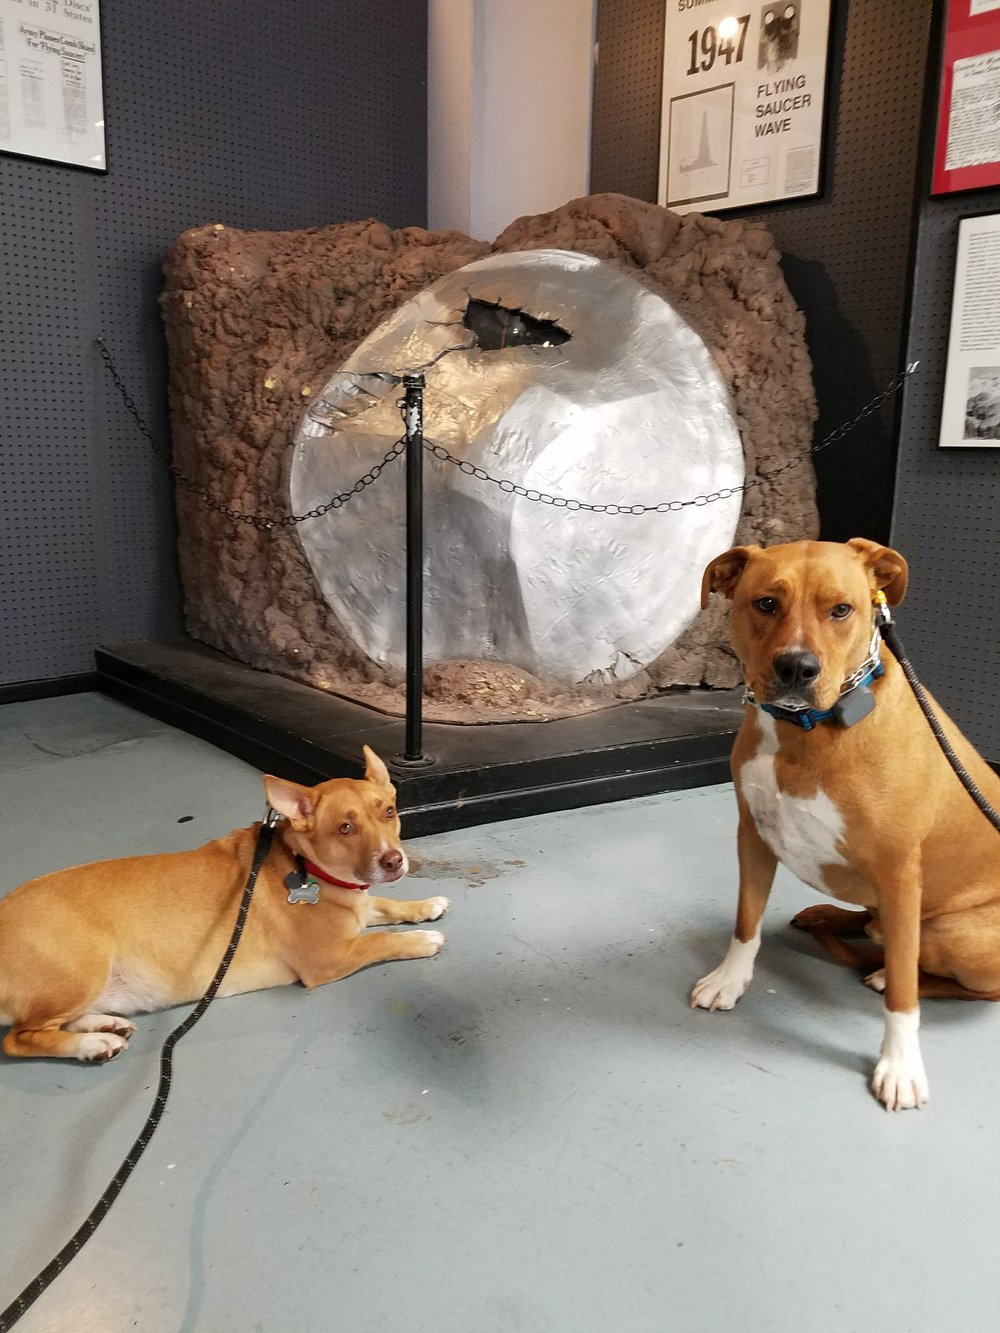 The pups are excited to get to go on our adventures, just too sure they really wanted to meet aliens.